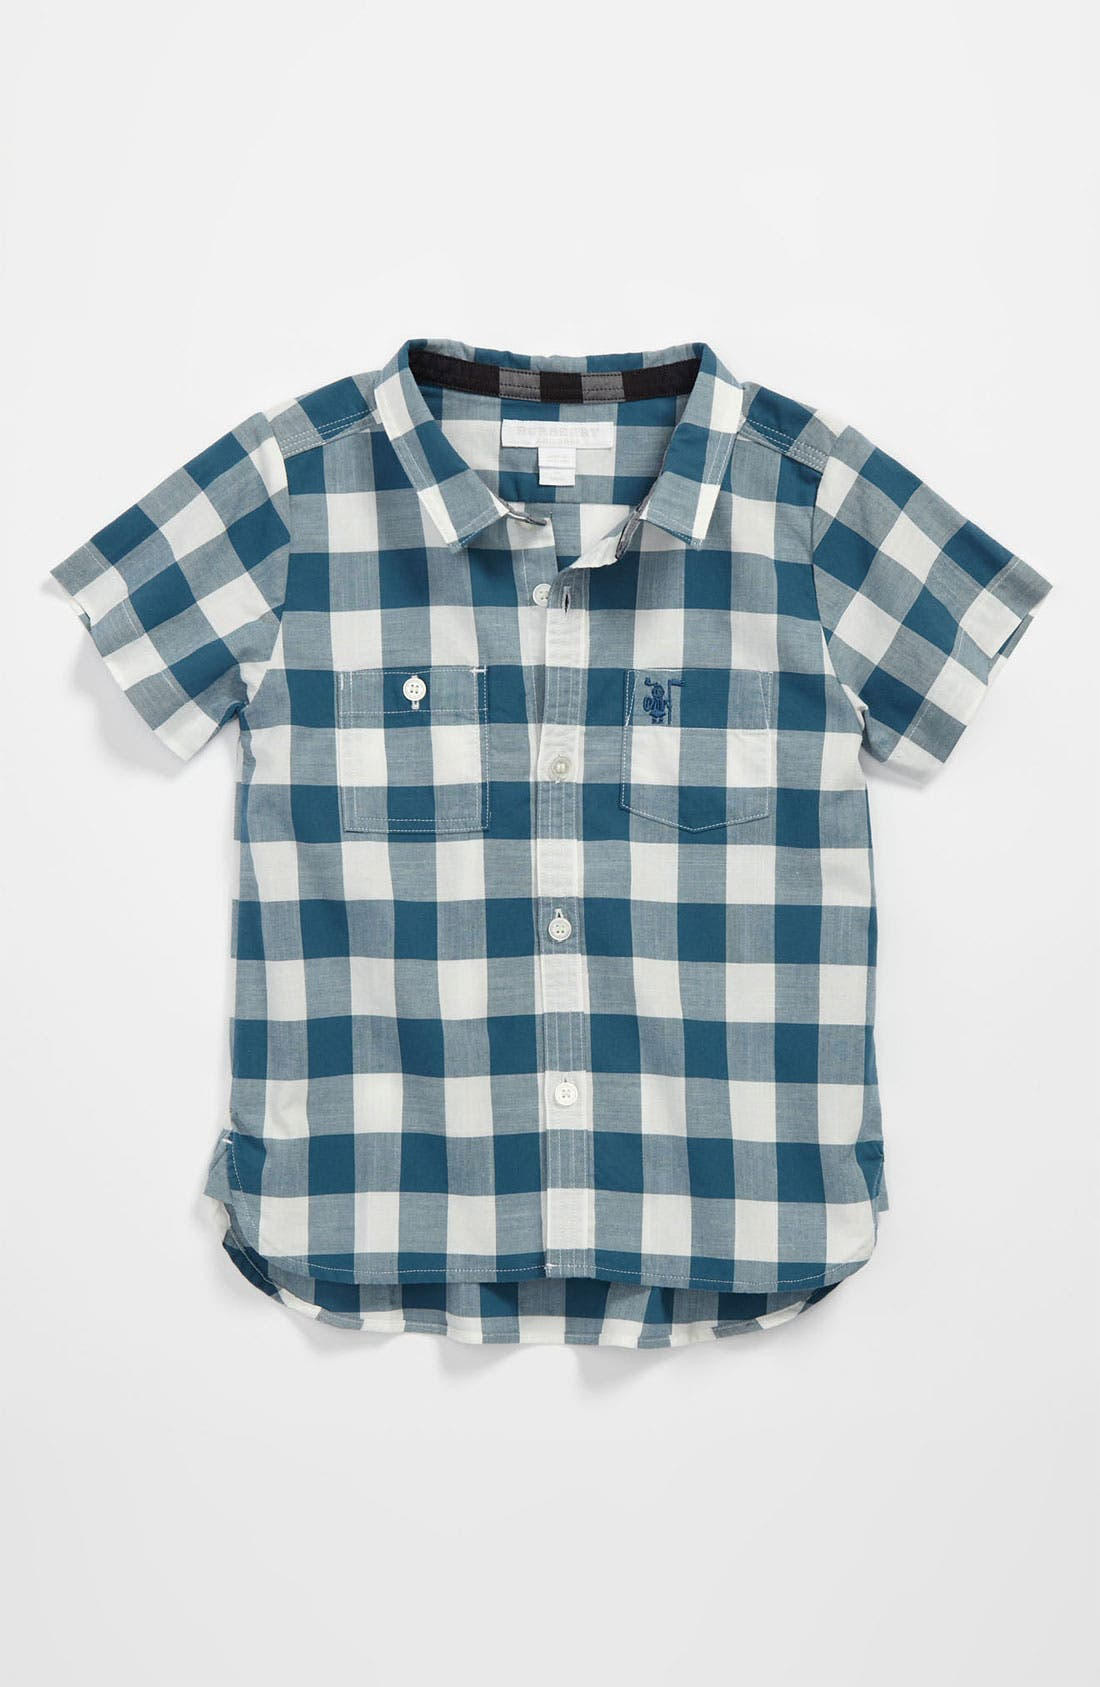 Main Image - Burberry 'Mini Rex' Woven Shirt (Baby)